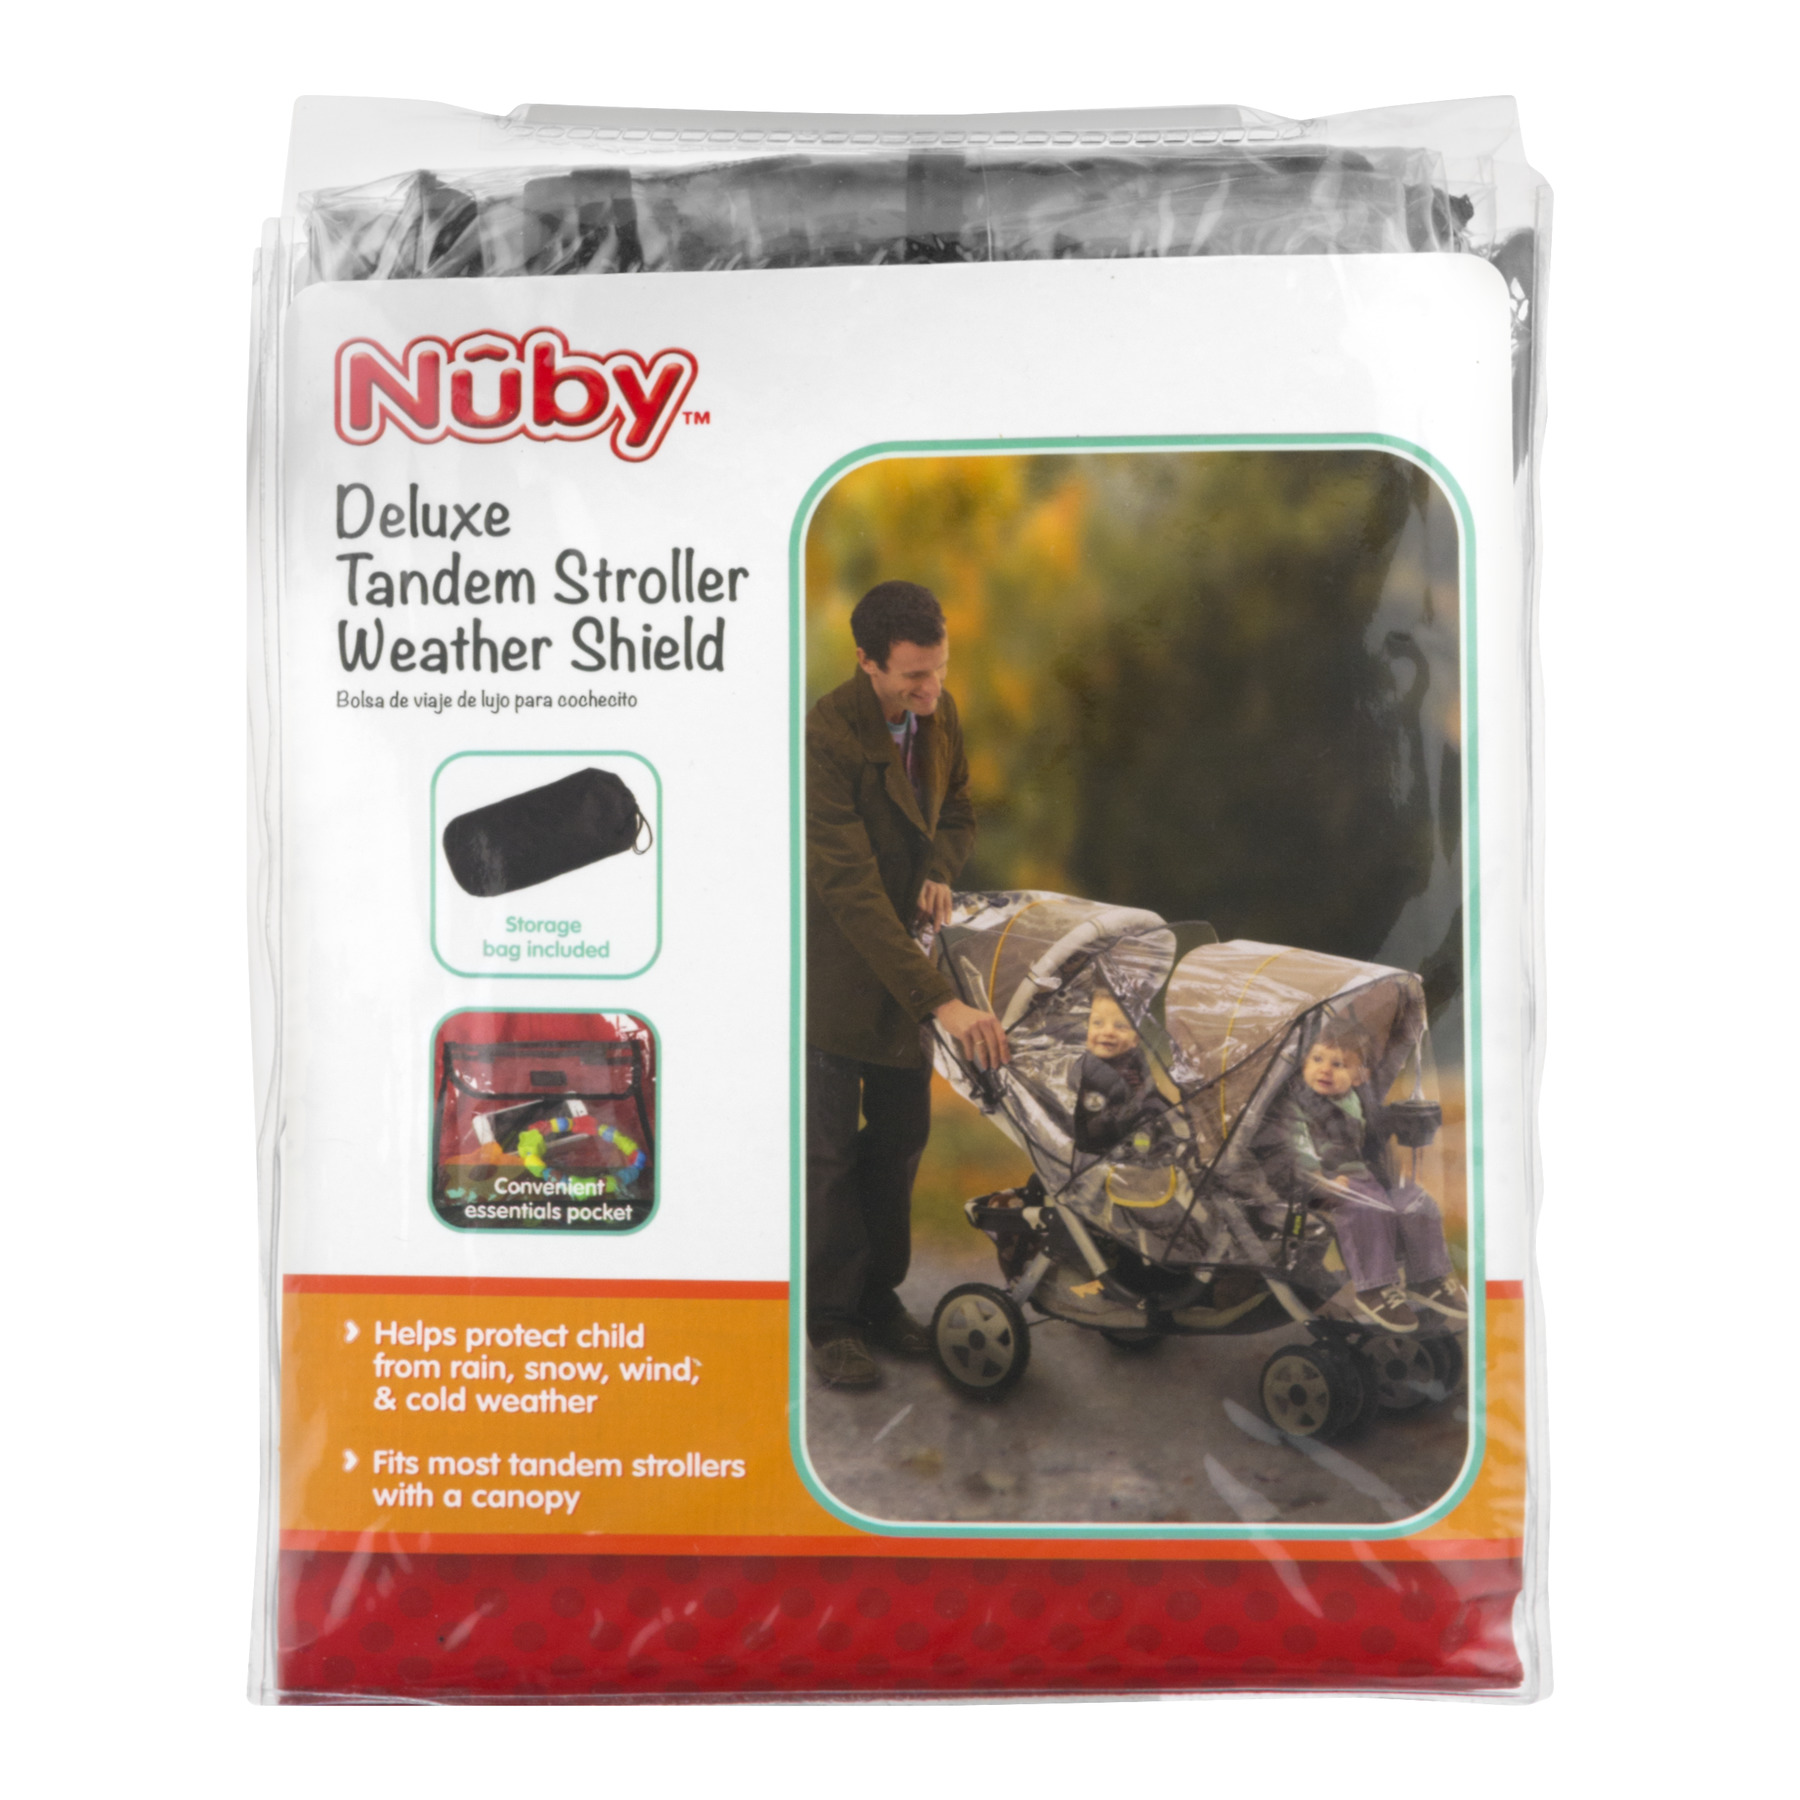 Nuby Deluxe Tandem Stroller Weather Shield, 1.0 CT